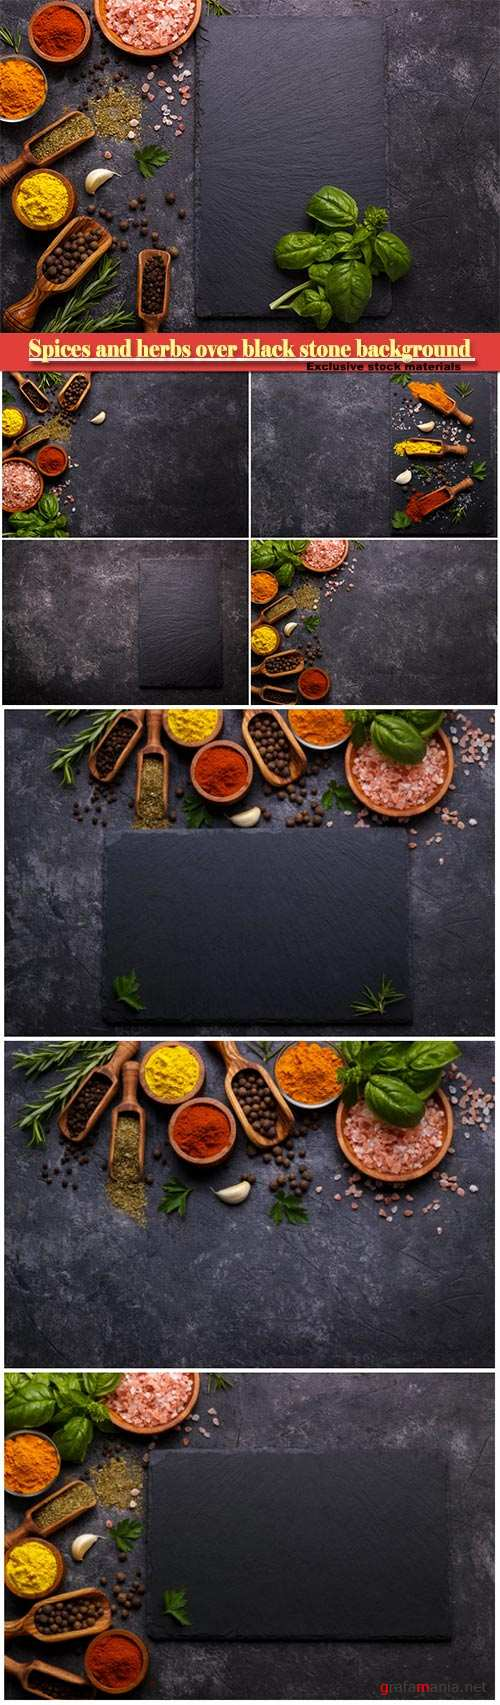 Spices and herbs over black stone background, top view with free space for menu or recipes